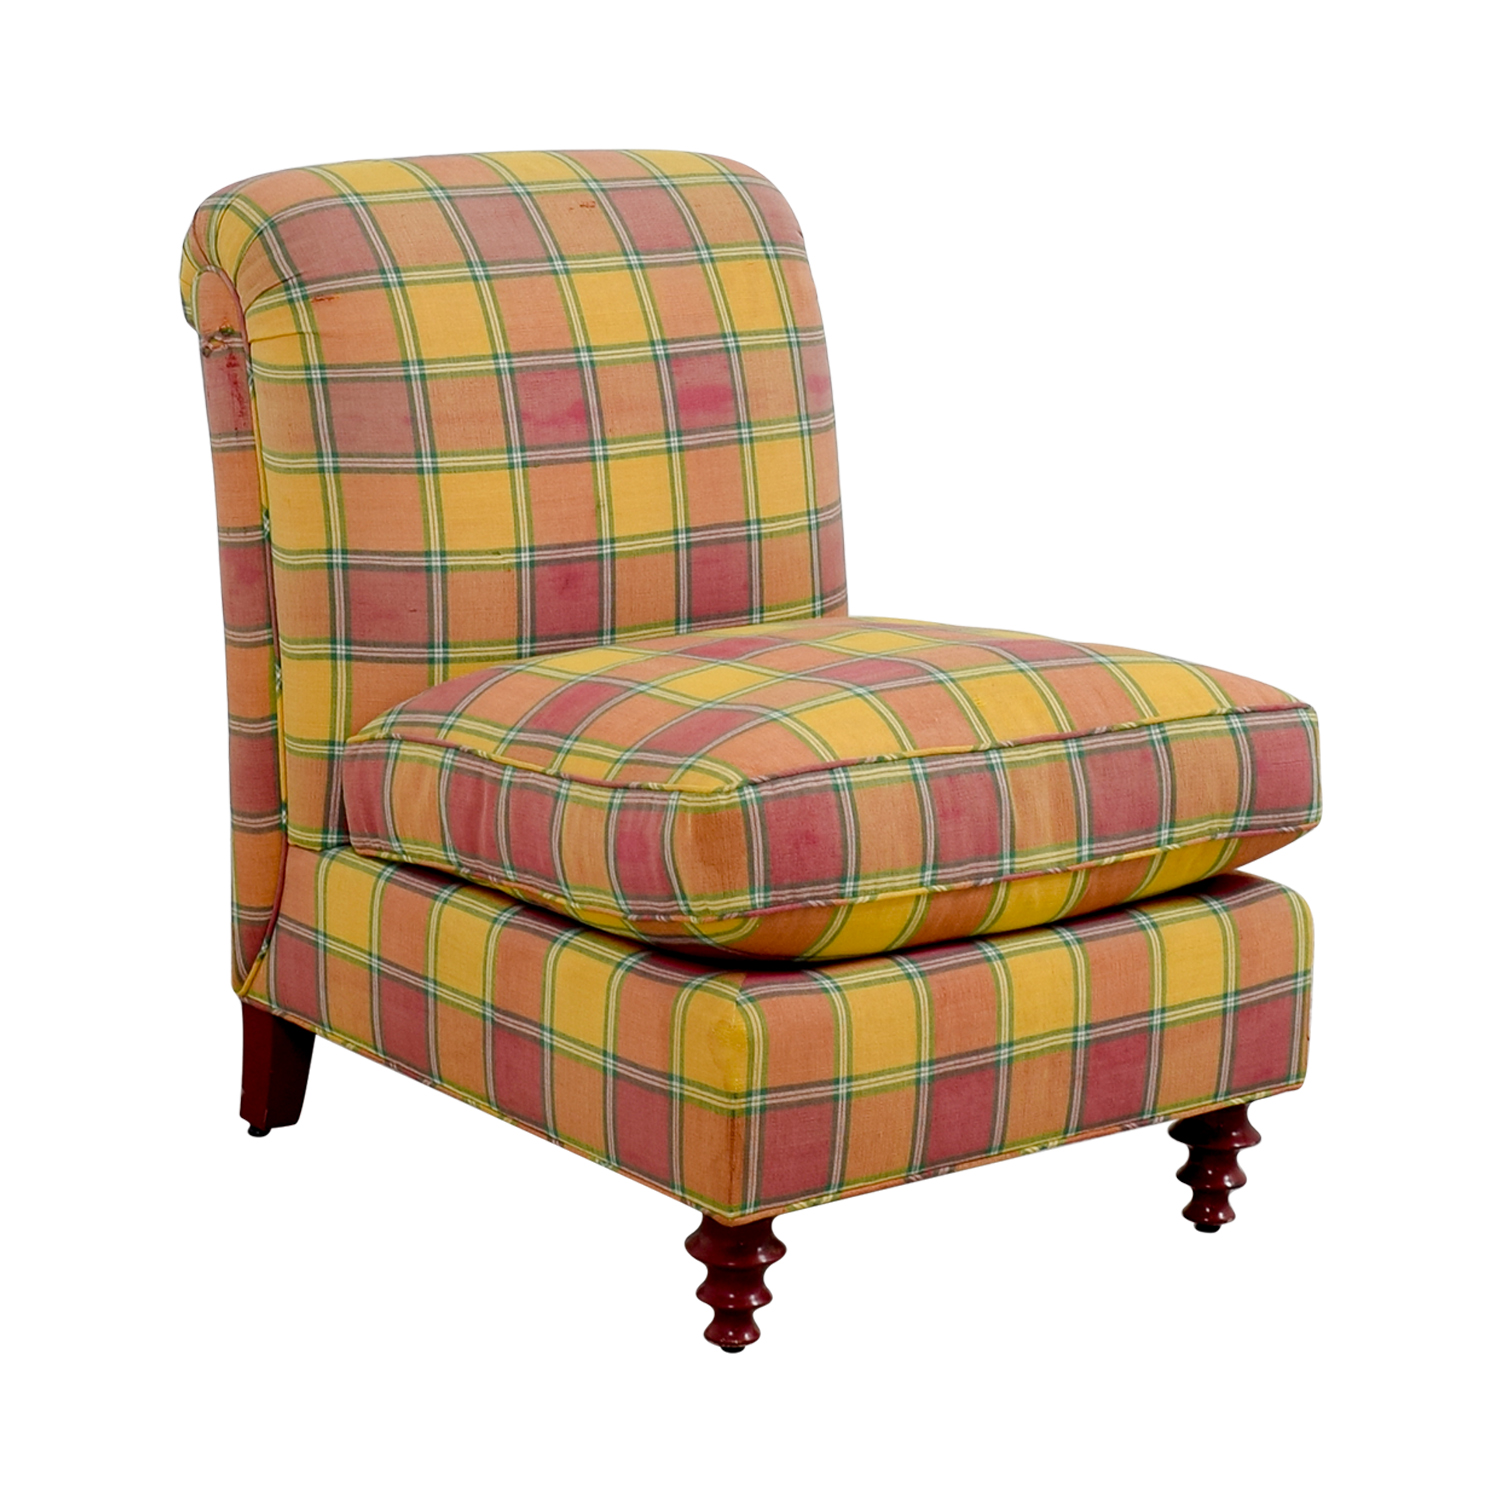 Plaid Chair 90 Off Furniture Masters Furniture Masters Red And